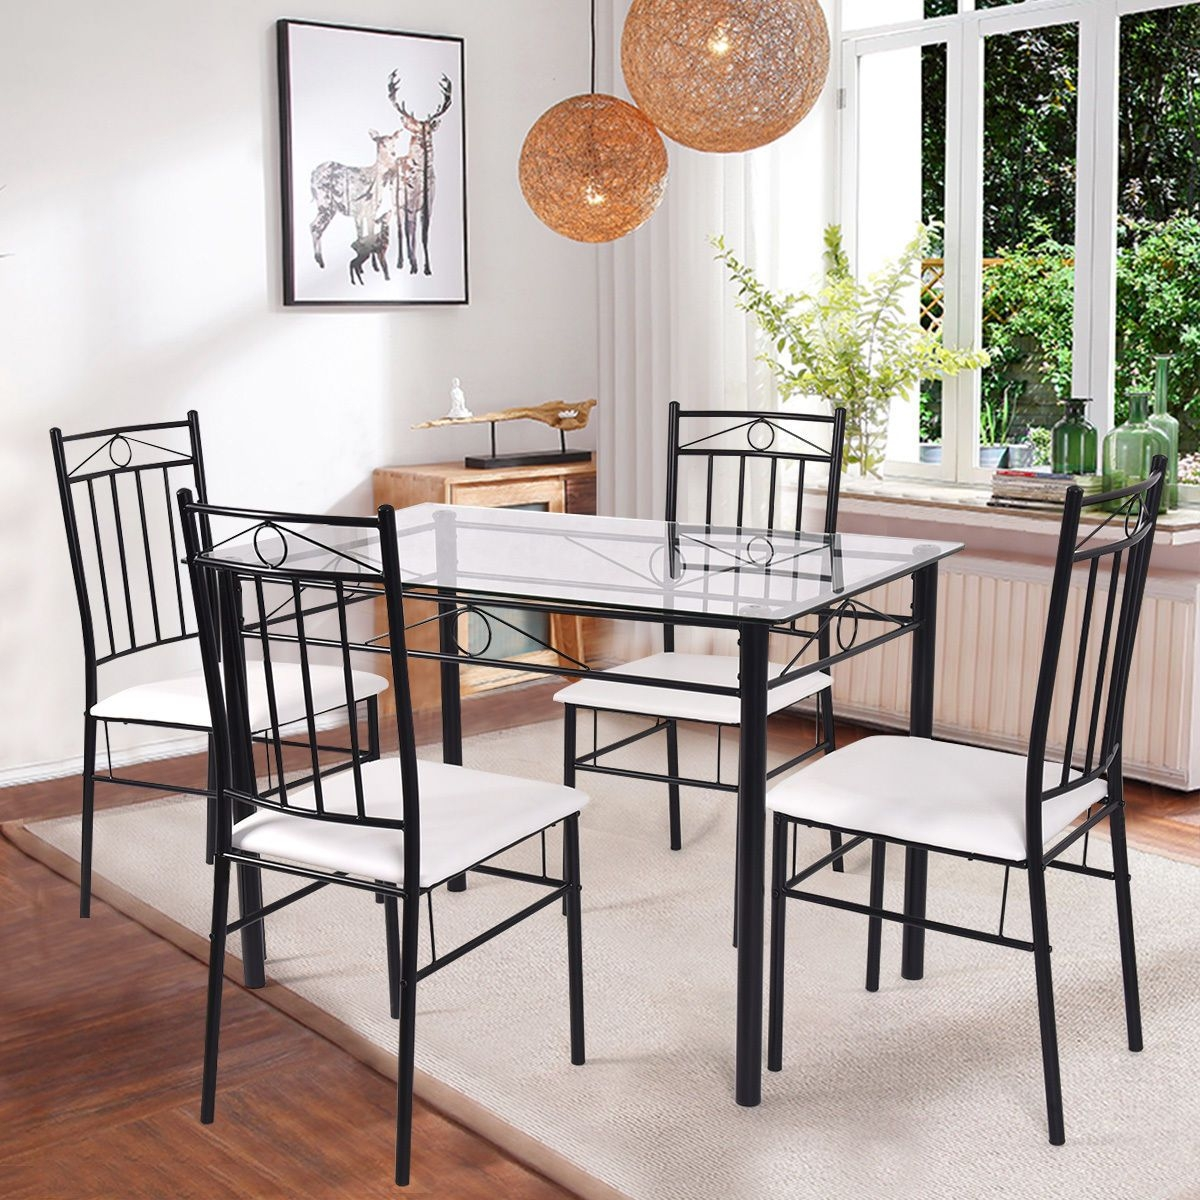 Costway 5 Piece Dining Set Glass Metal Table And 4 Chairs Kitchen Breakfast Furniture  Walmart